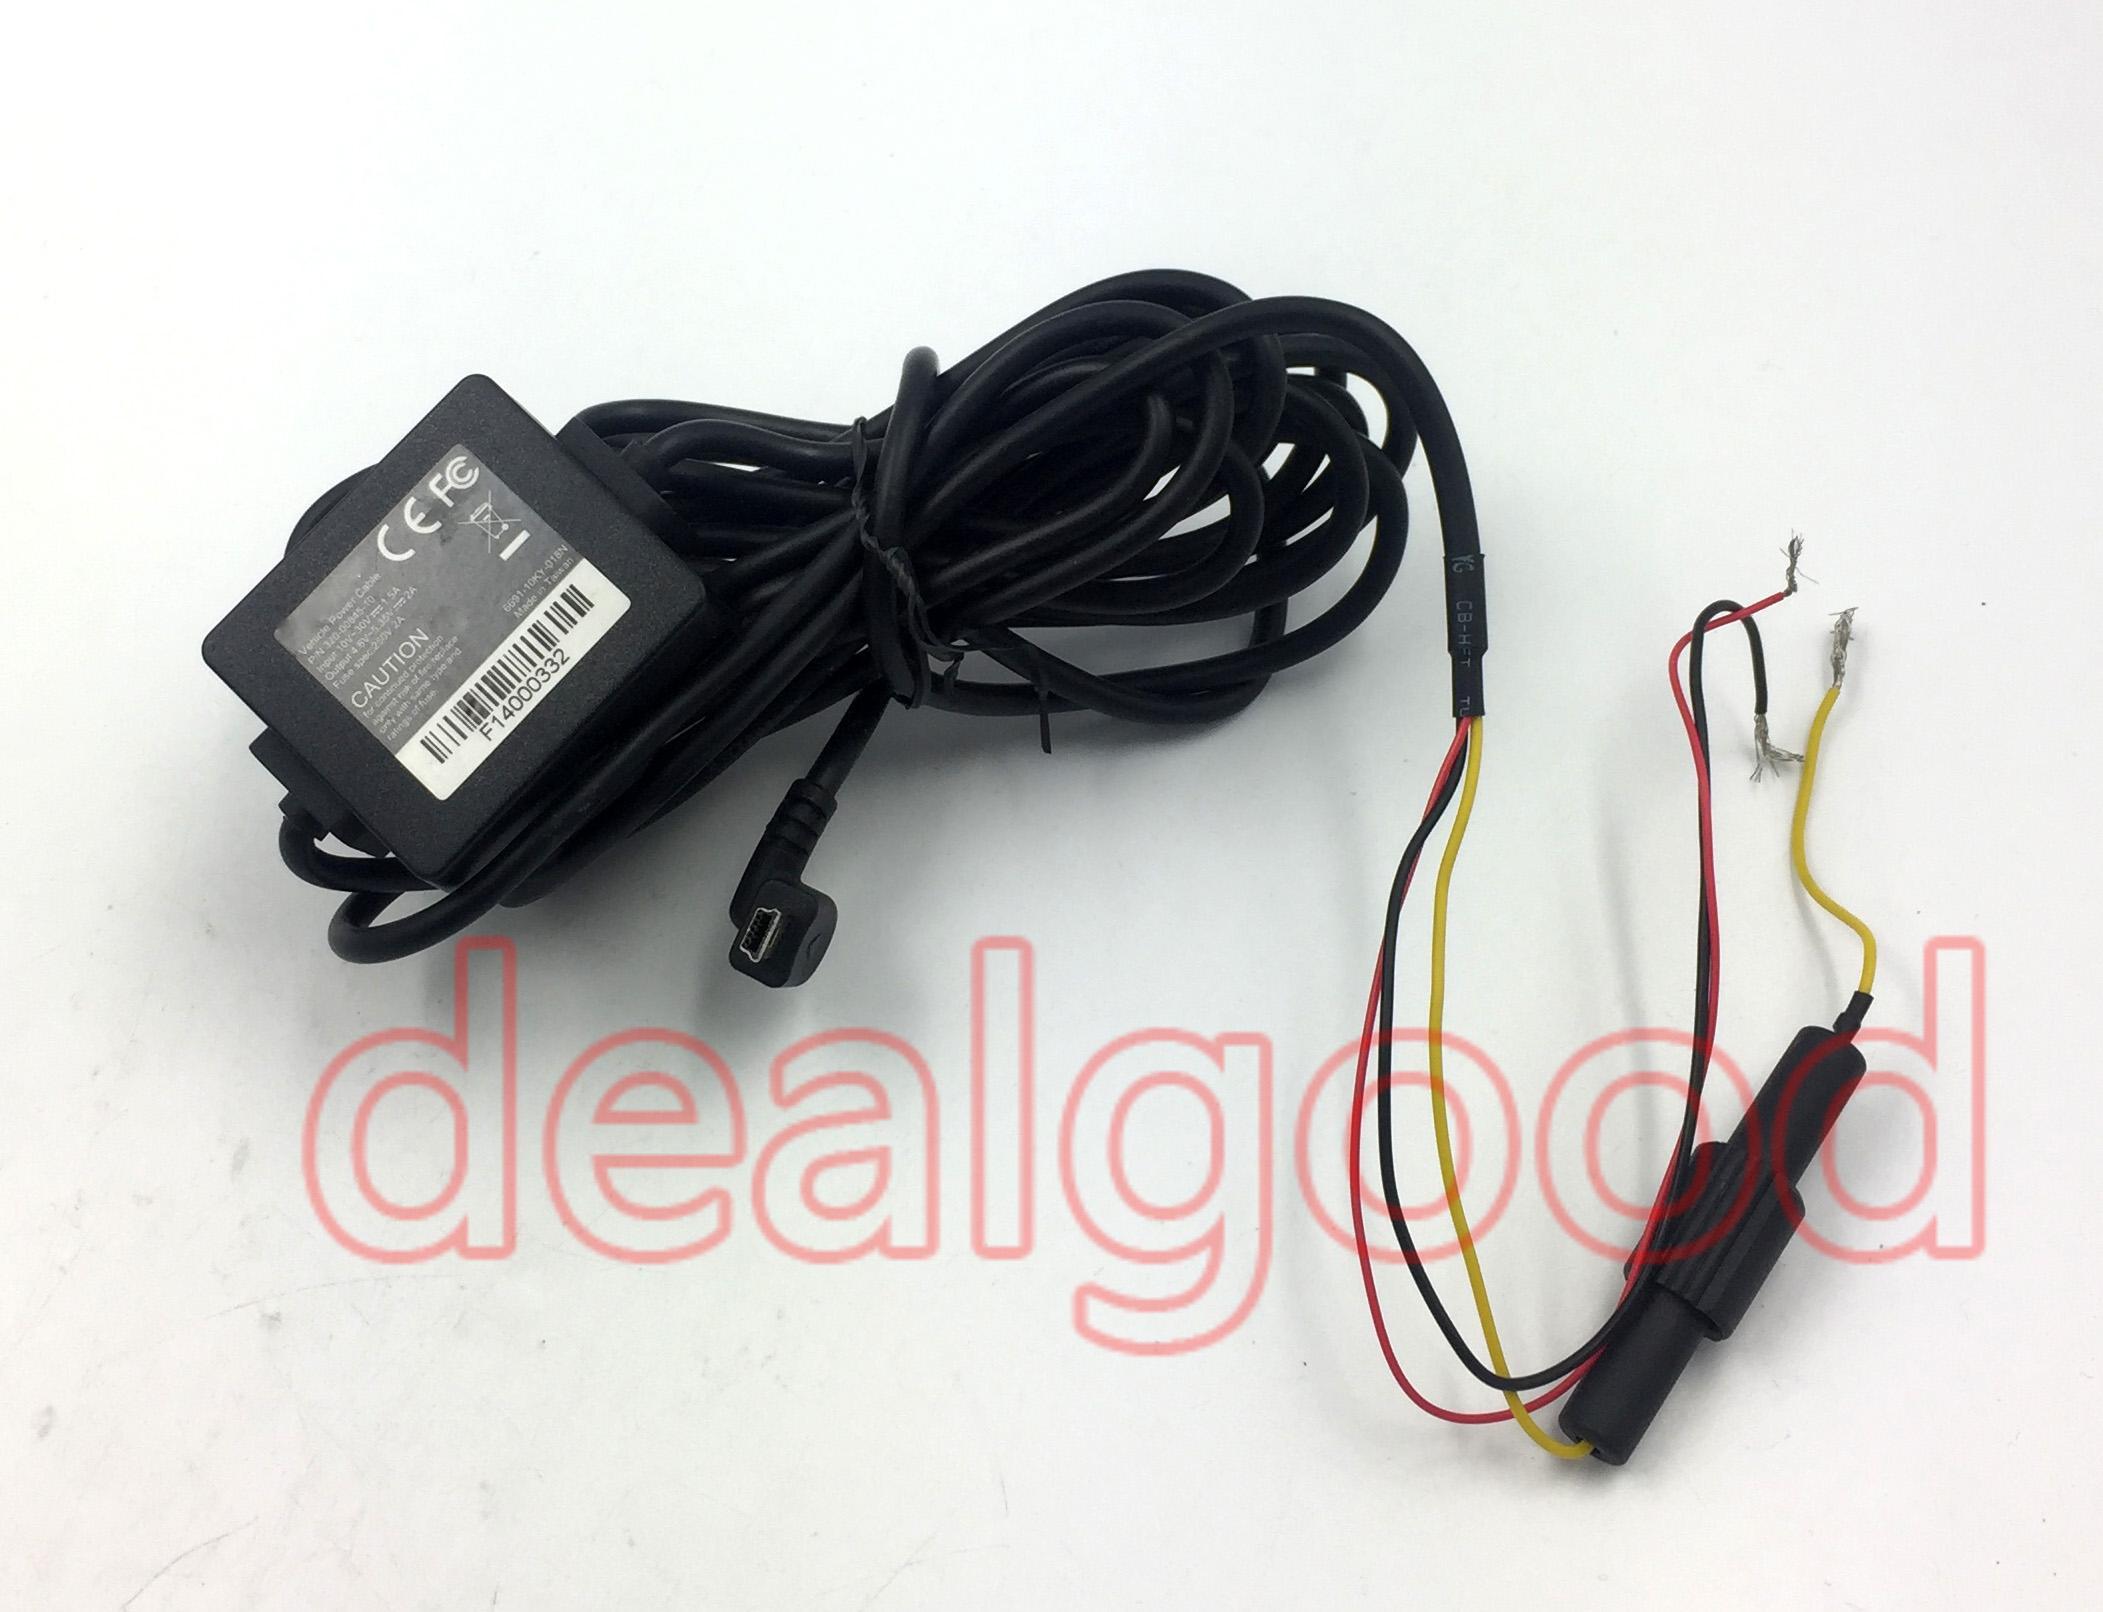 Vehicle Power Cable Data Sync Cable Garmin Input 10-30V/1 5A Output  4 6-5 35/2A Fuse spec 250V/2A